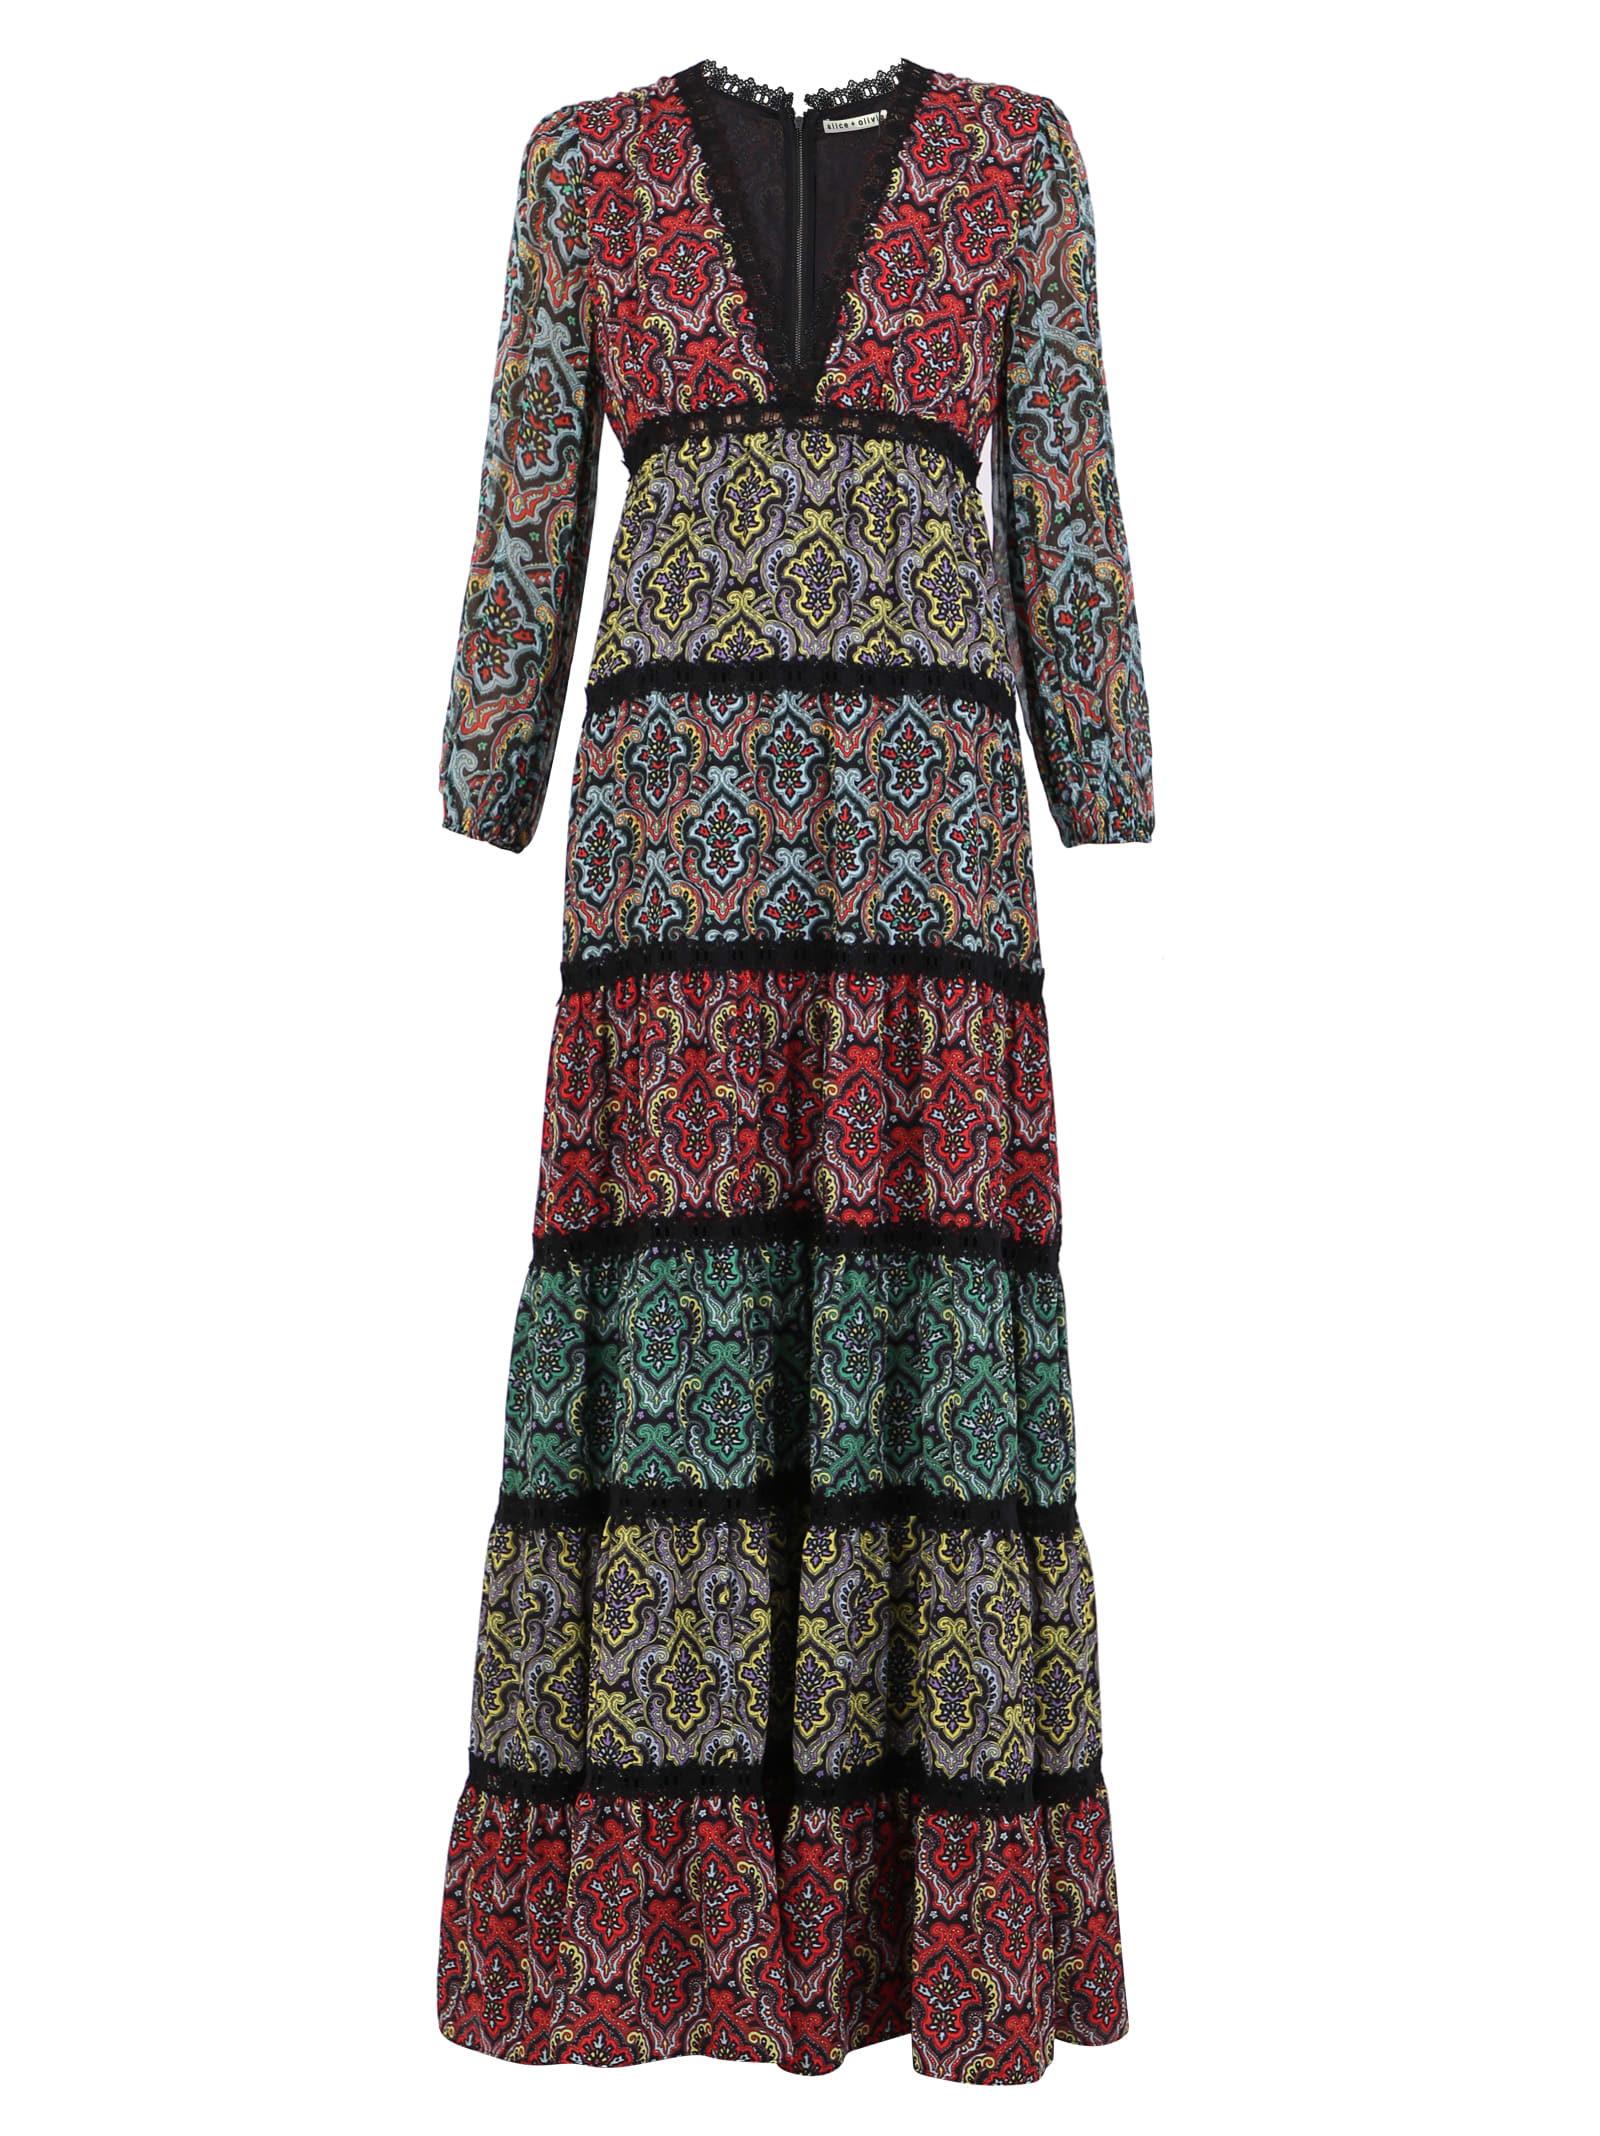 Alice + Olivia Paisley Motif Dress